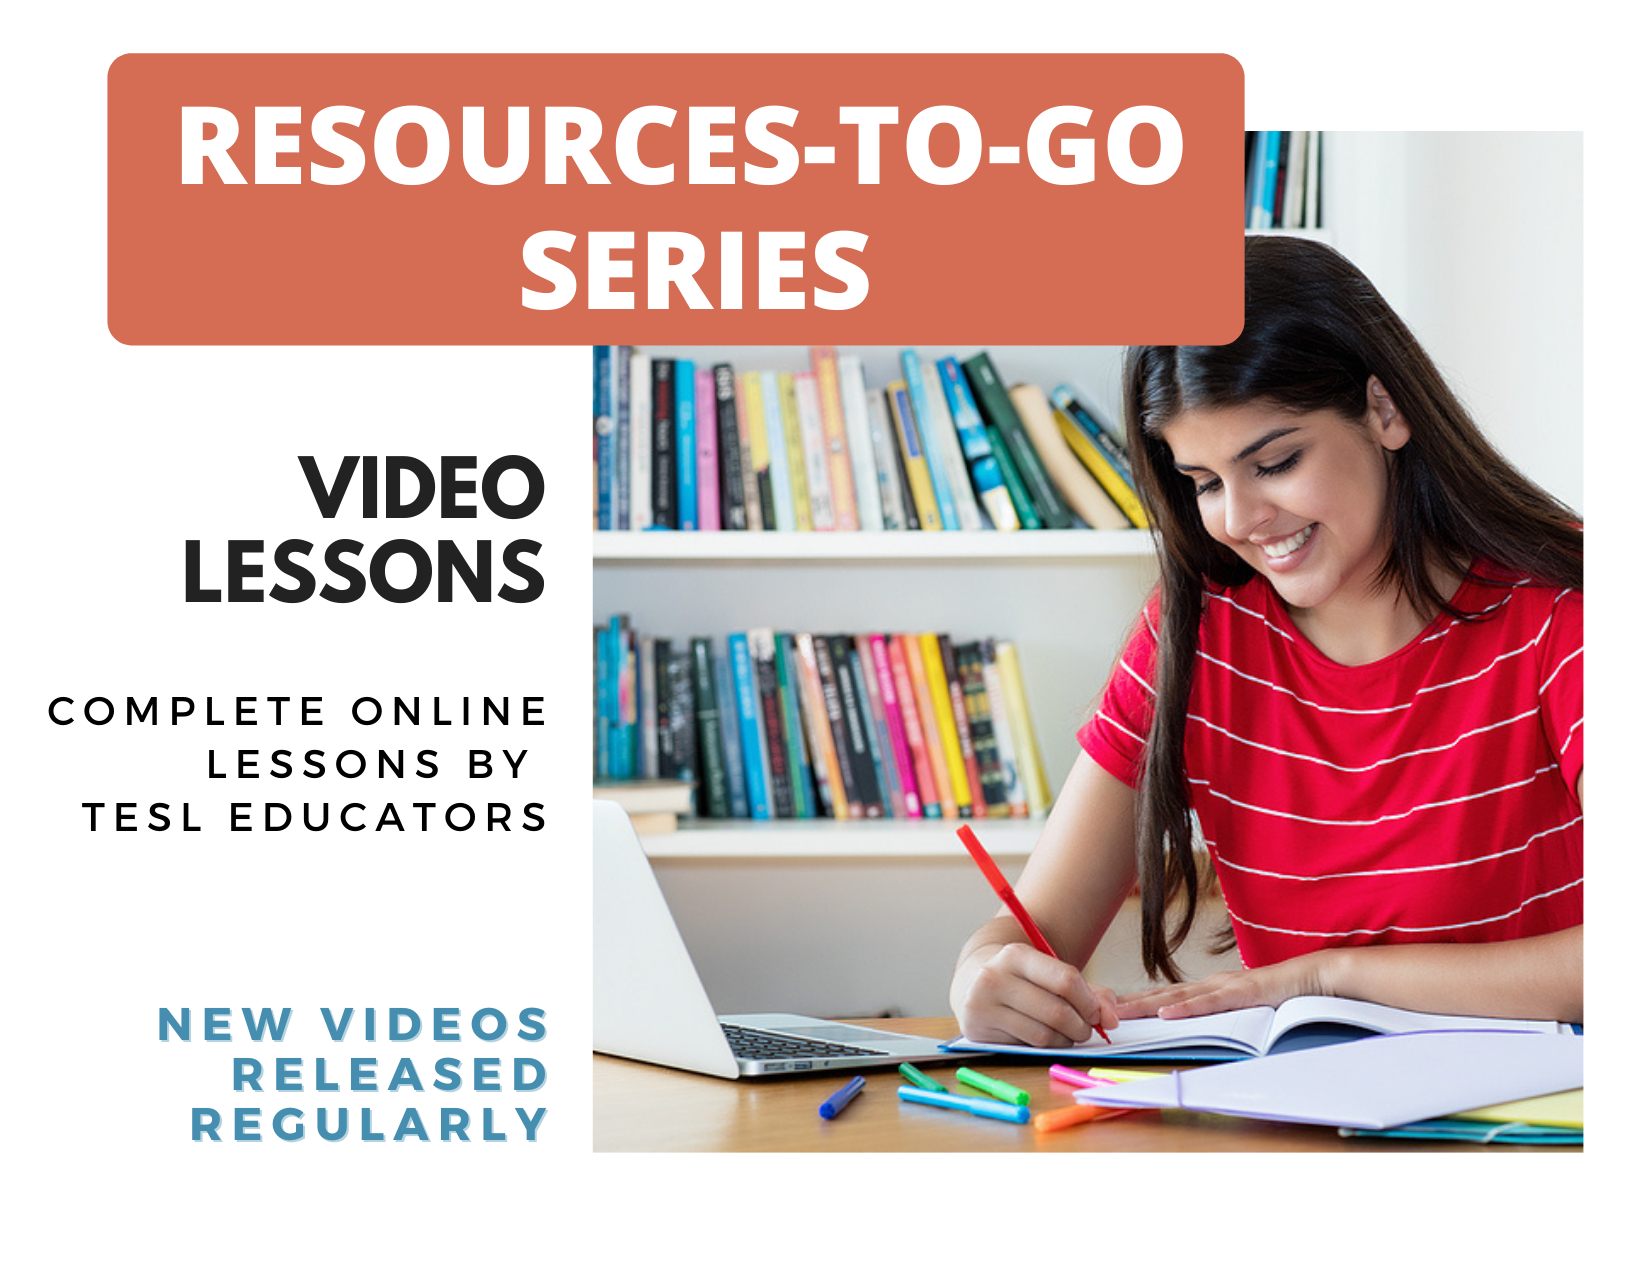 Resources to go